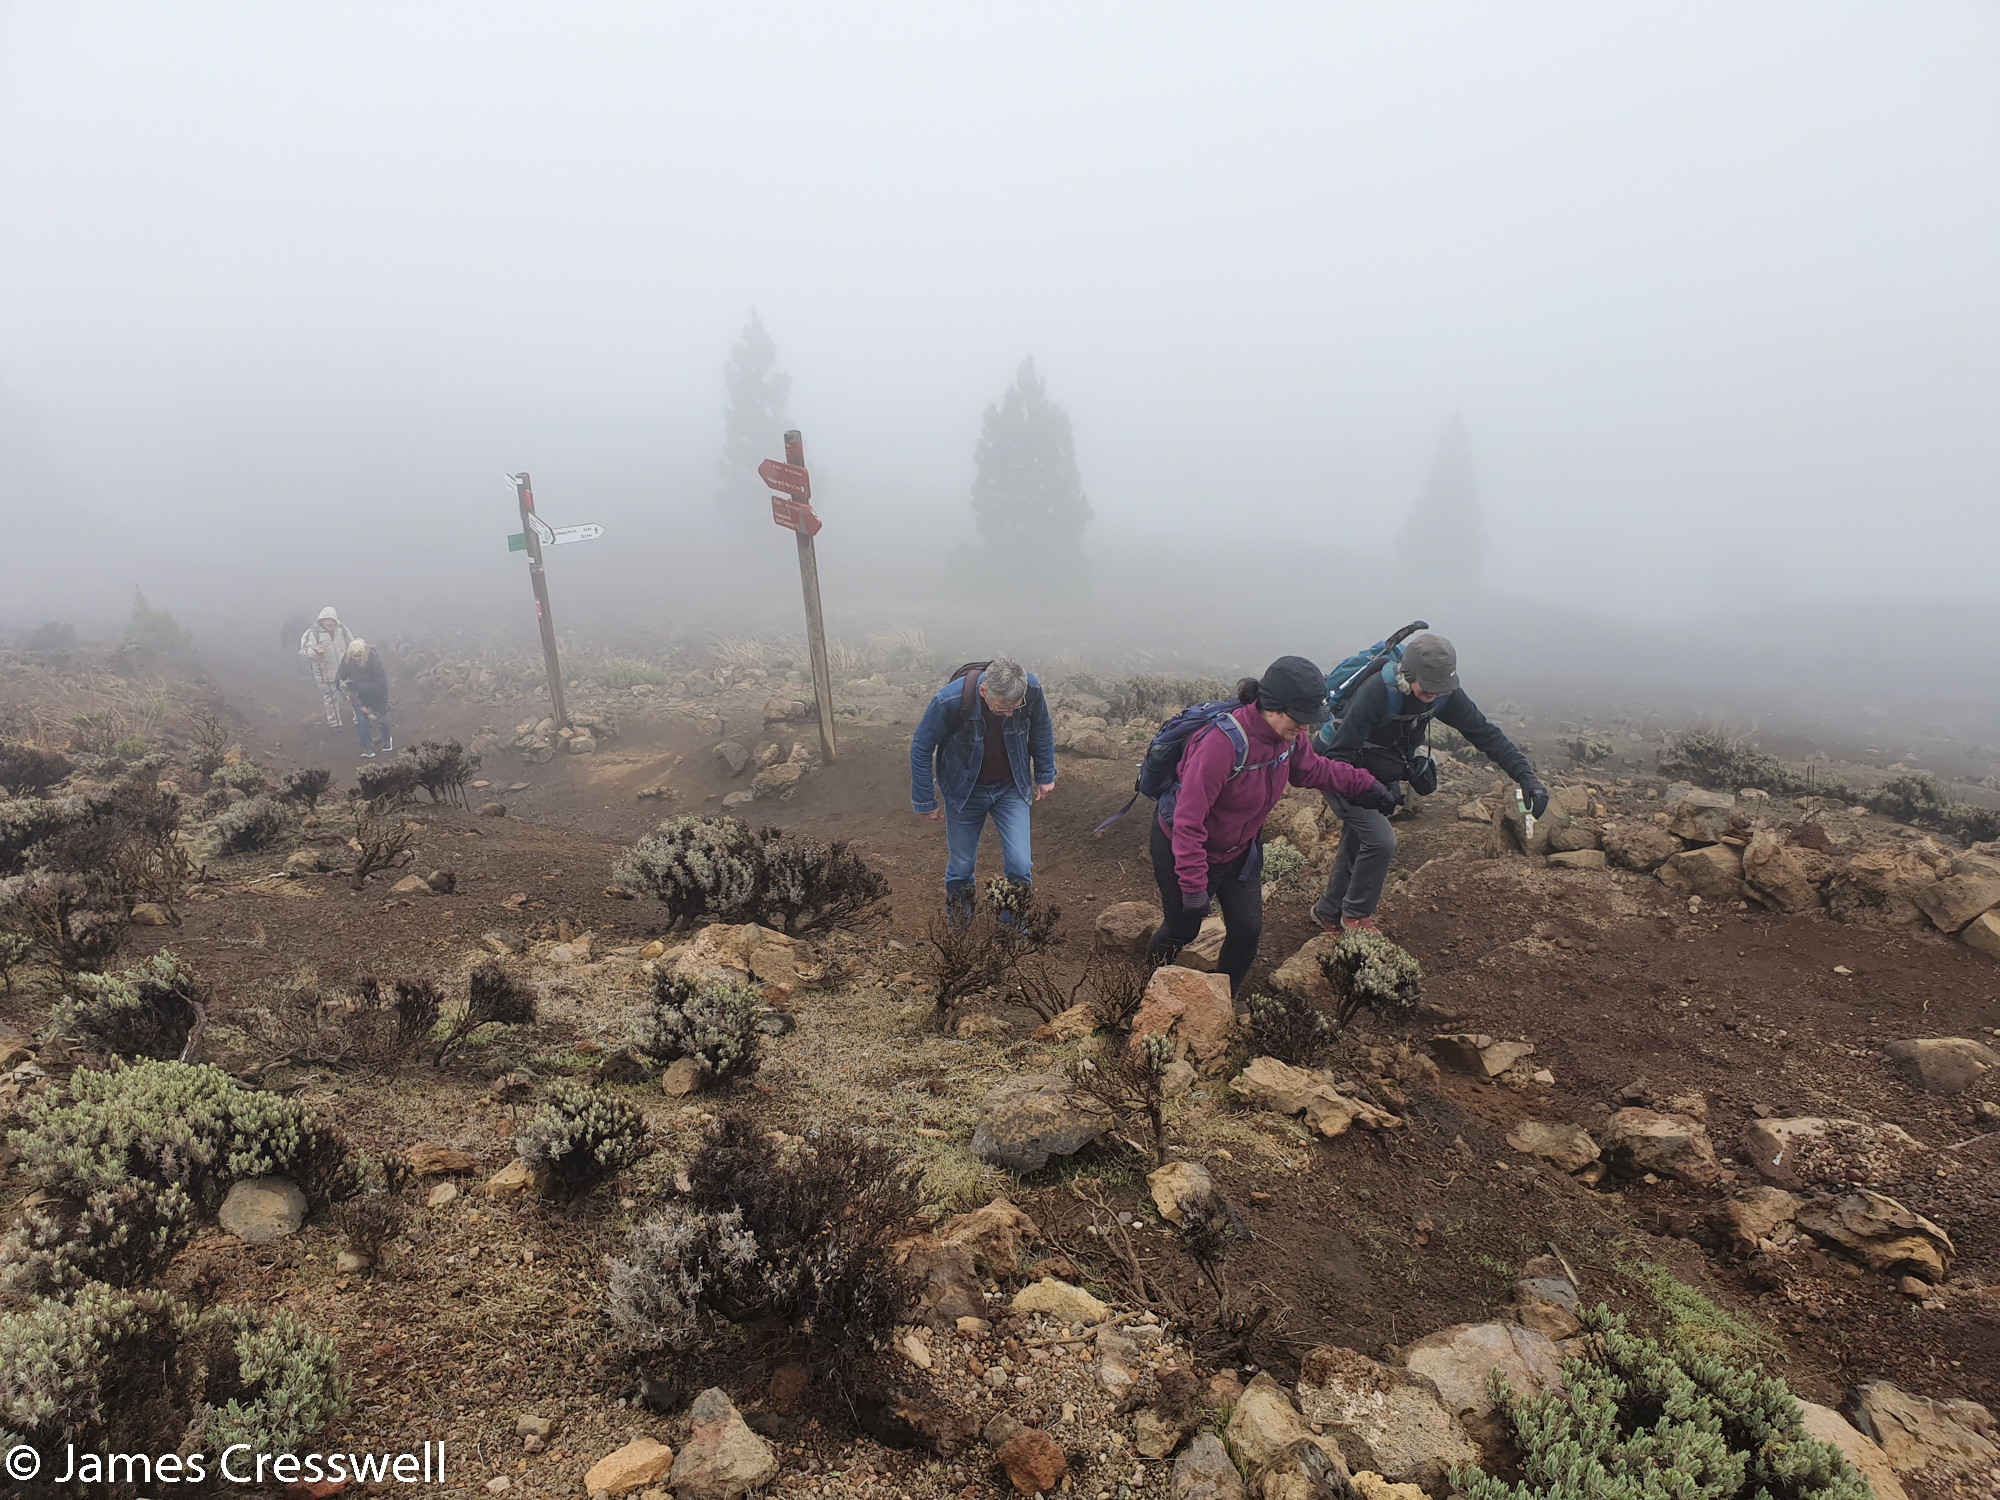 People climbing a rocky hill in cloudy conditions